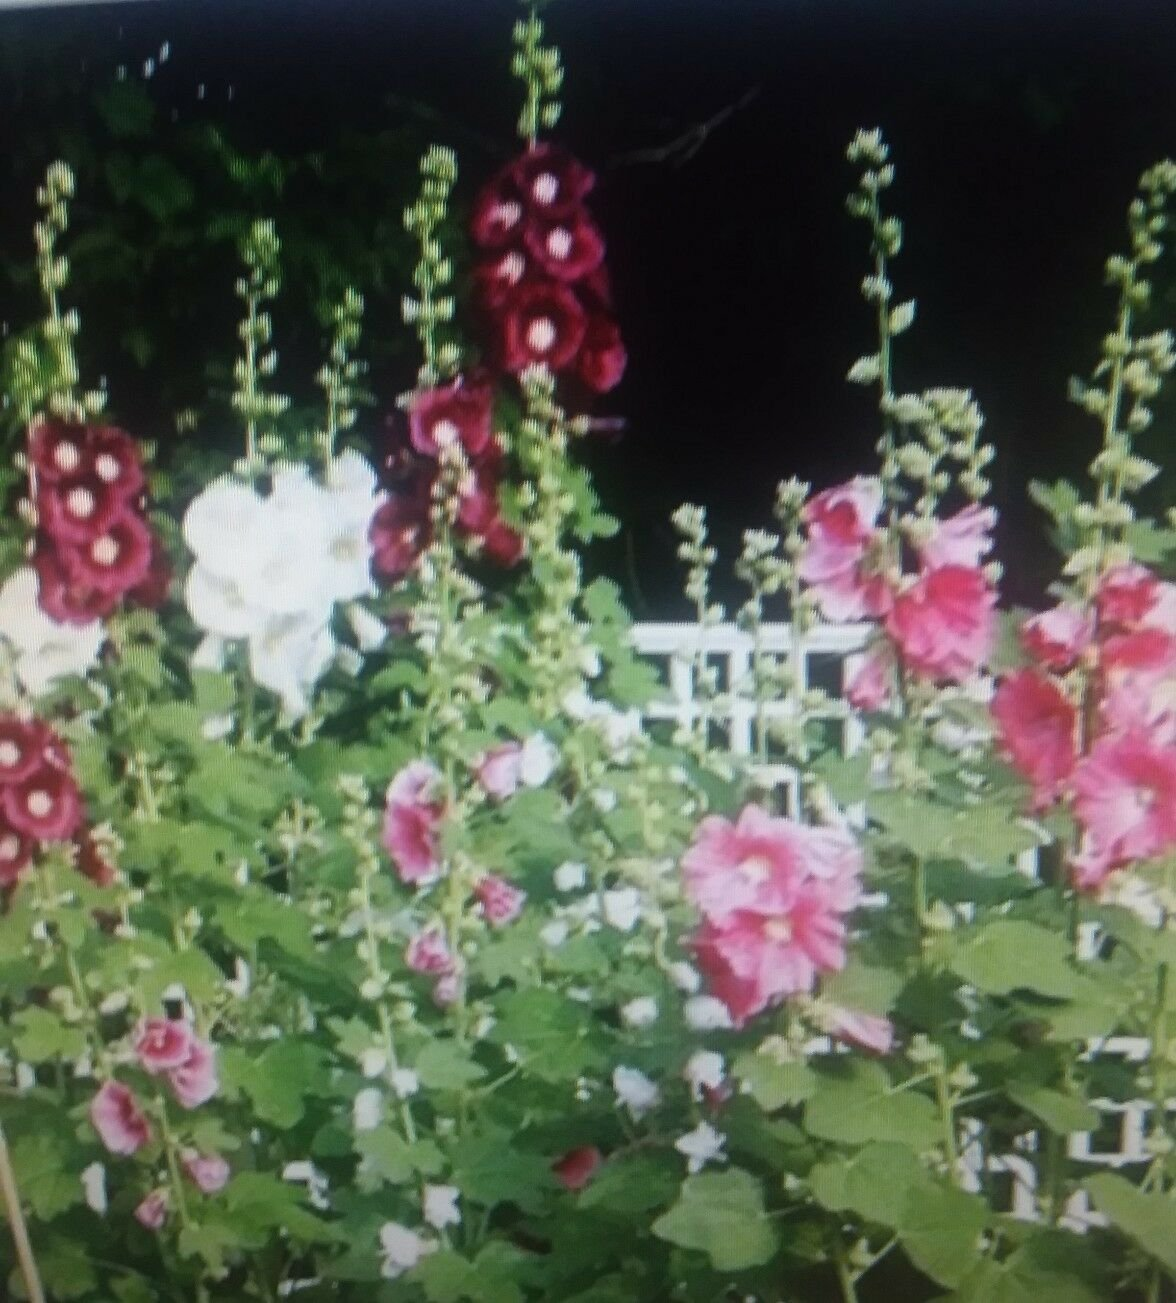 20 of Hollyhock Indian Spring Mixed Flower Seeds